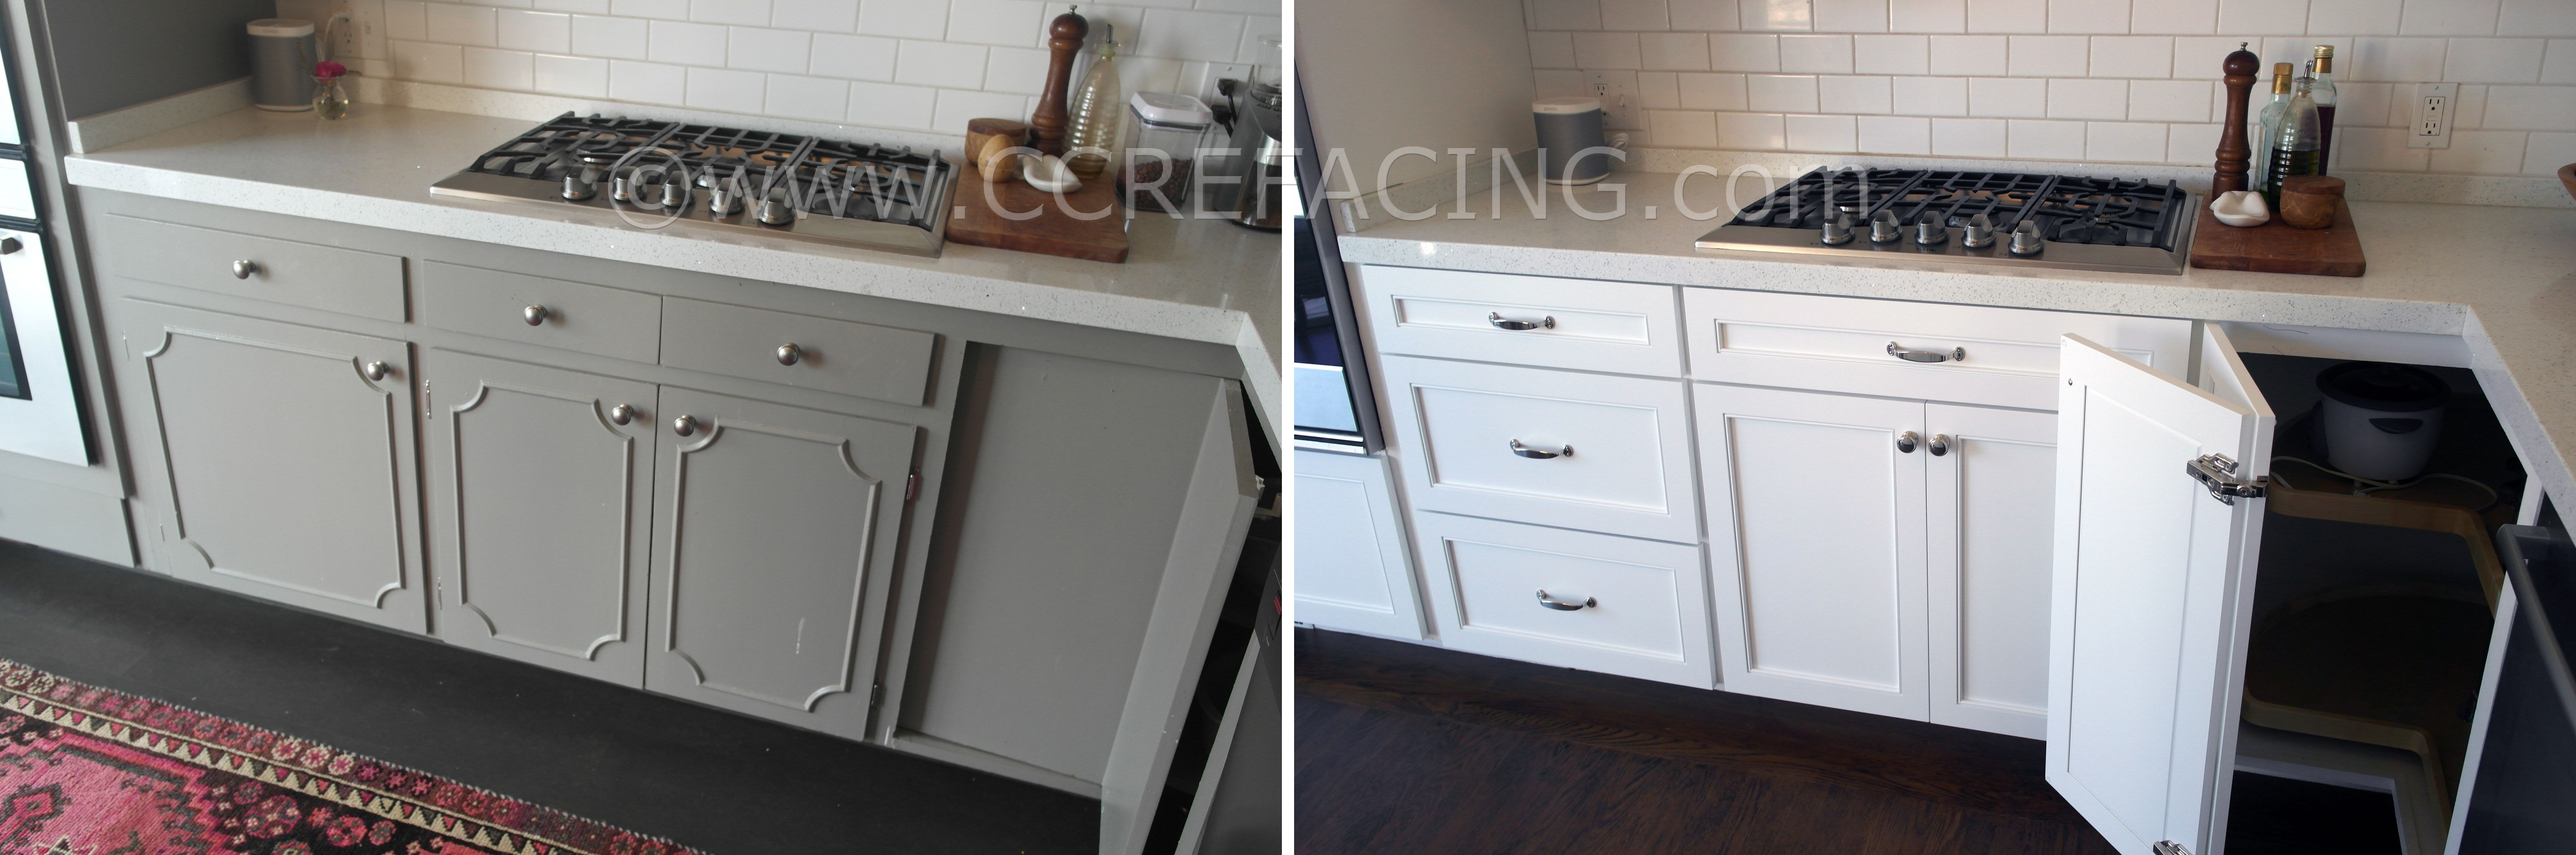 San Mateo Cabinet Reface Refacing With White Shaker Doors Cabinet Refacing Cabinet Thermofoil Cabinets